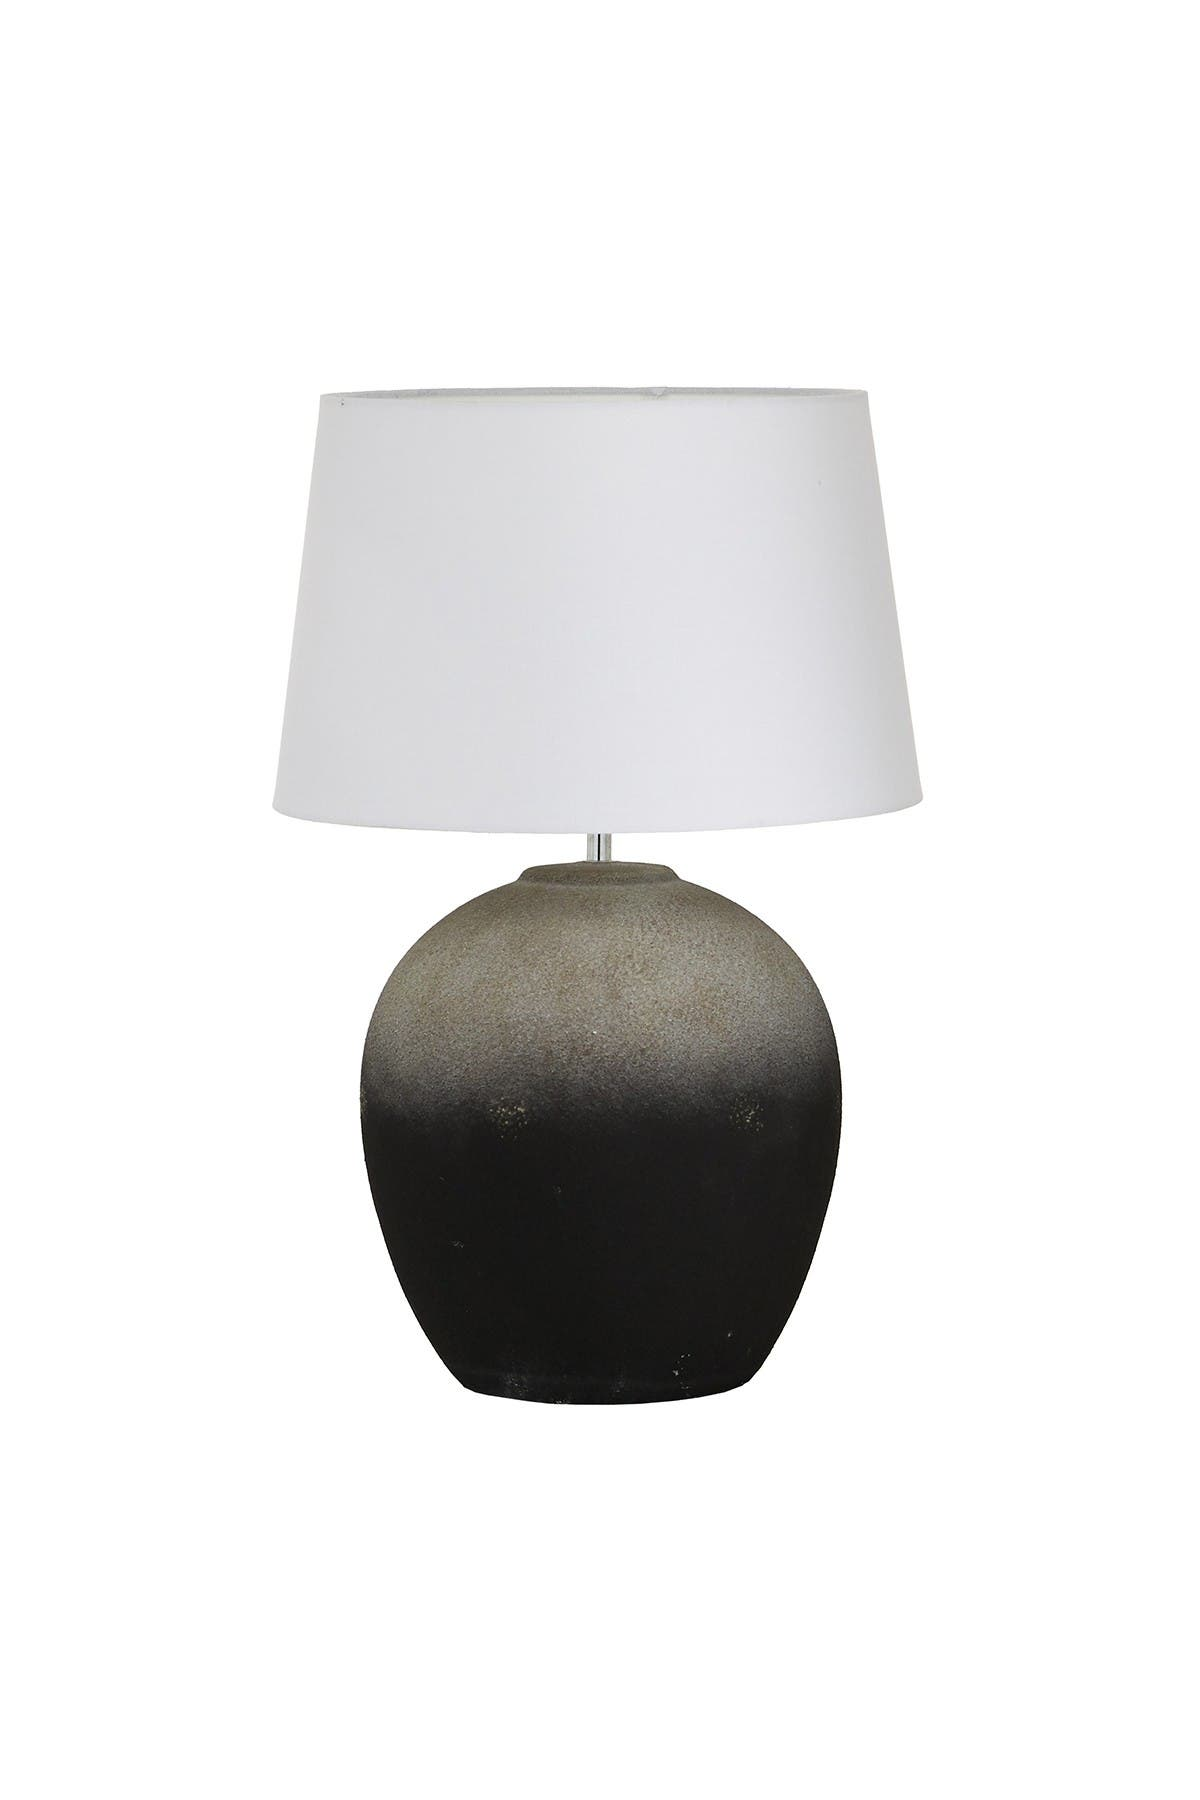 Willow Row Round Gray And Black Ceramic Table Lamp - 15\\\